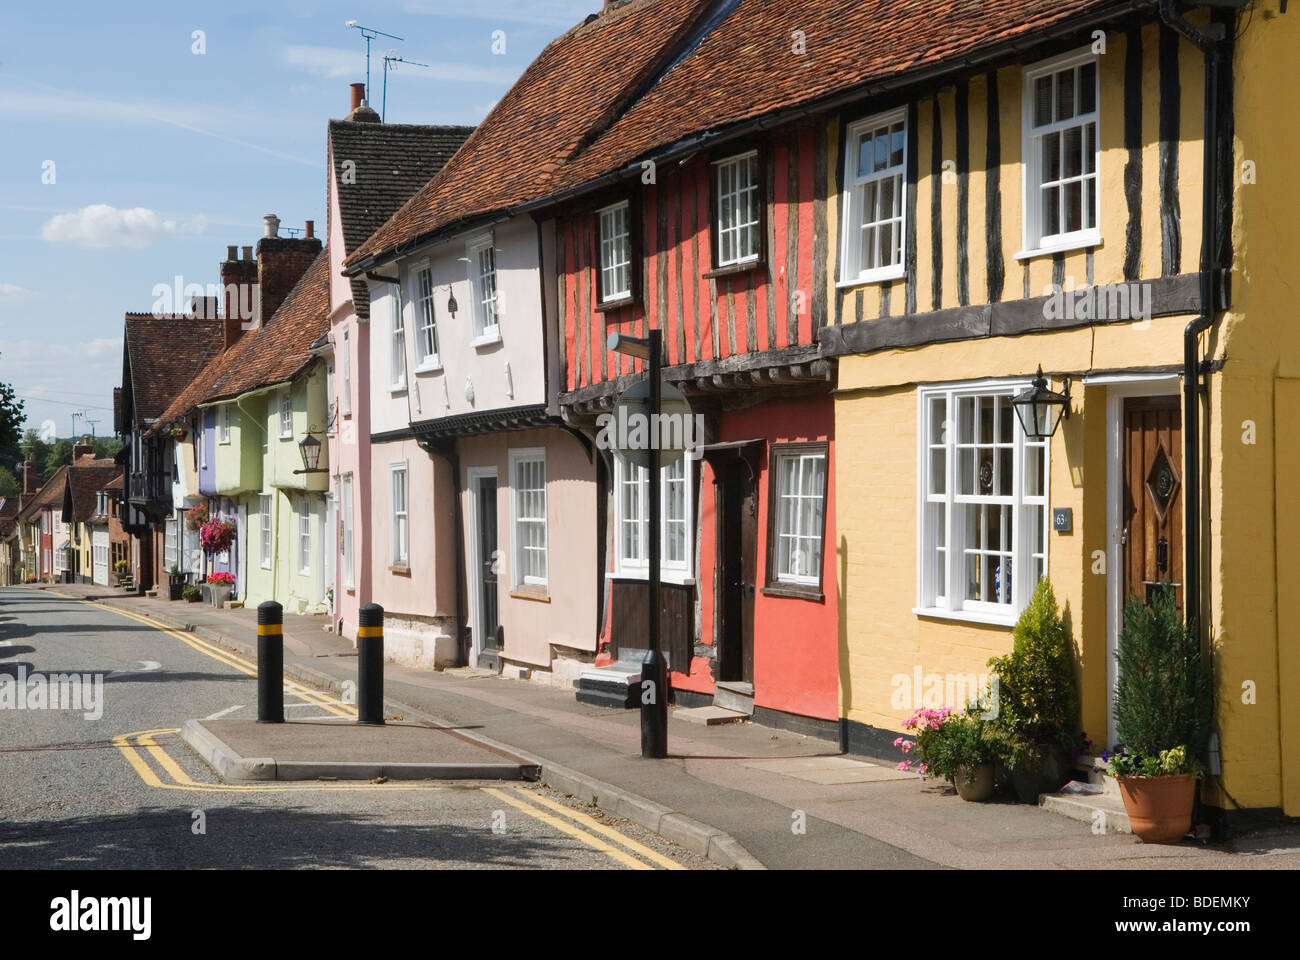 Saffron Walden Essex England Castle Street traditional colourful buildings. HOMER SYKES - Stock Image